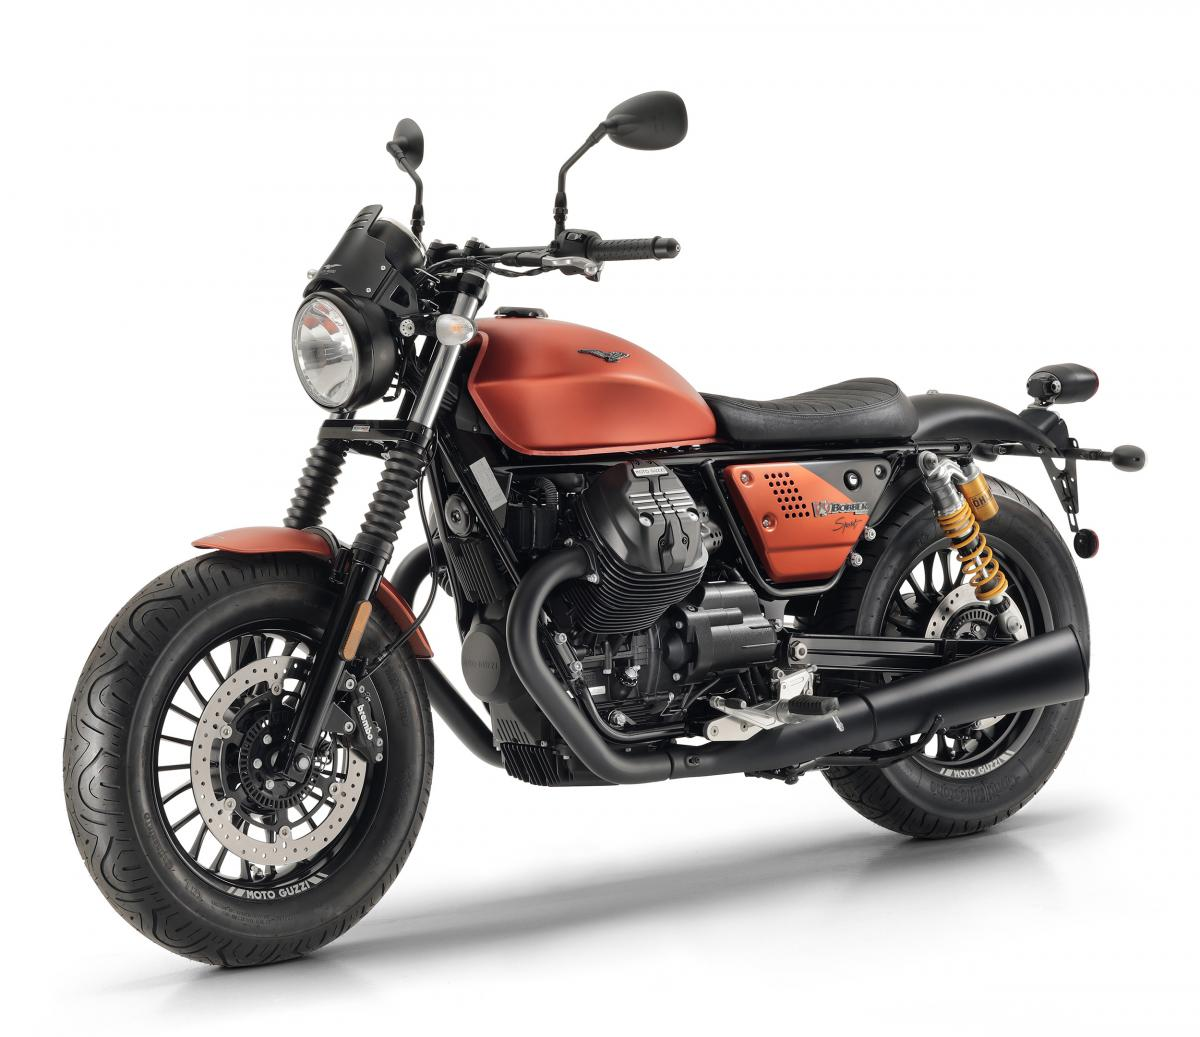 Moto Guzzi launches awesome new Bobber